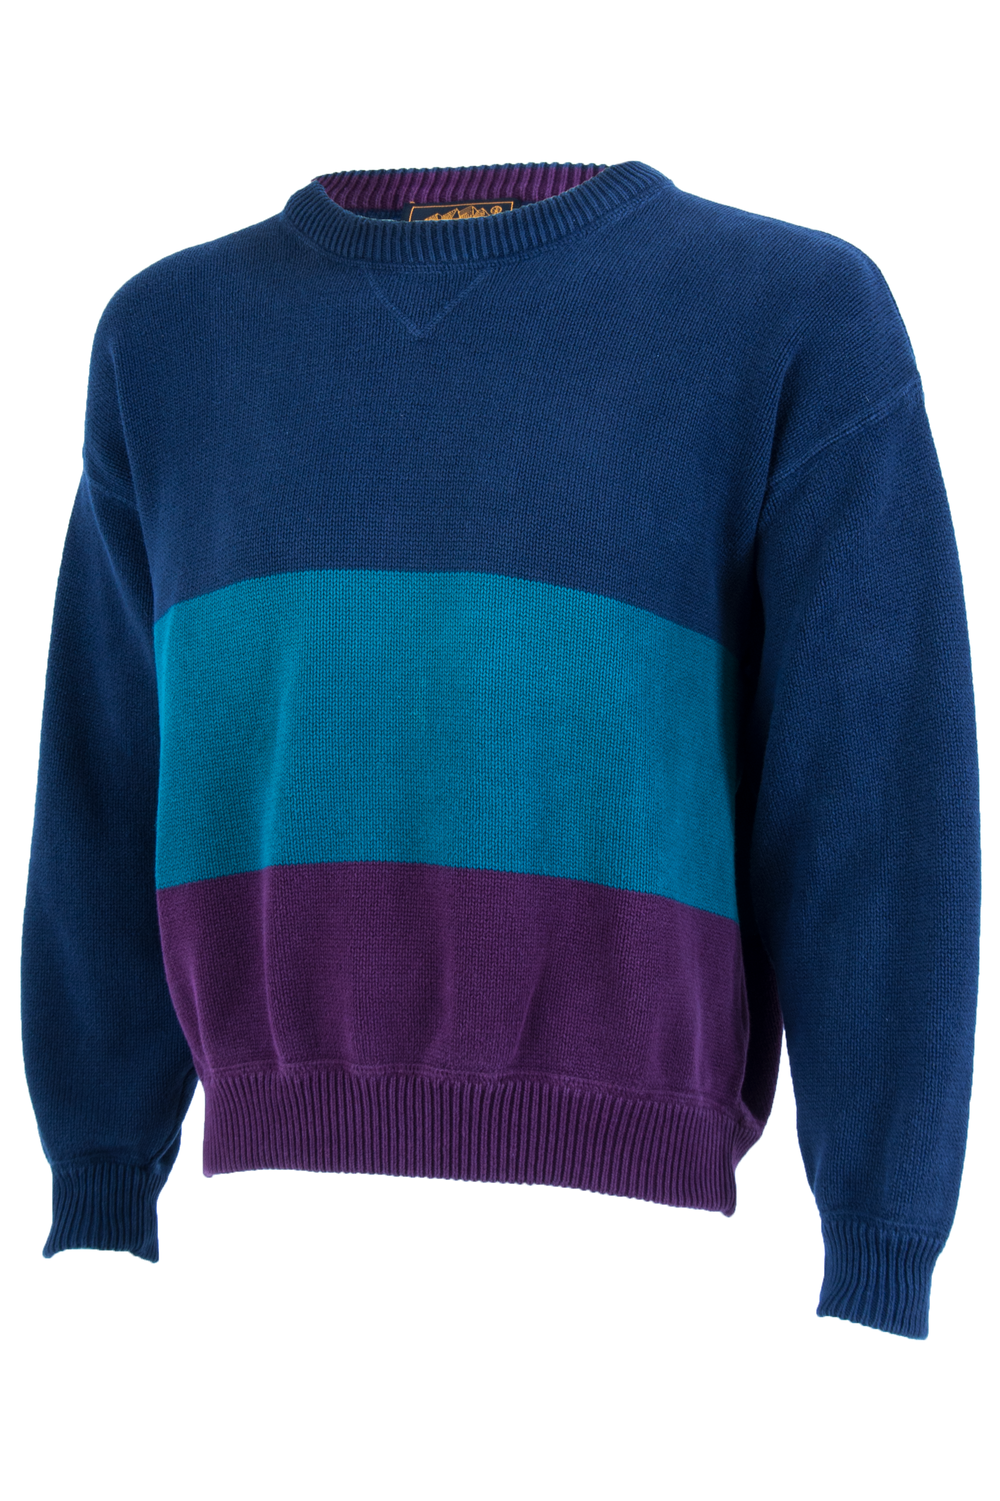 vintage blue and purple striped sweater